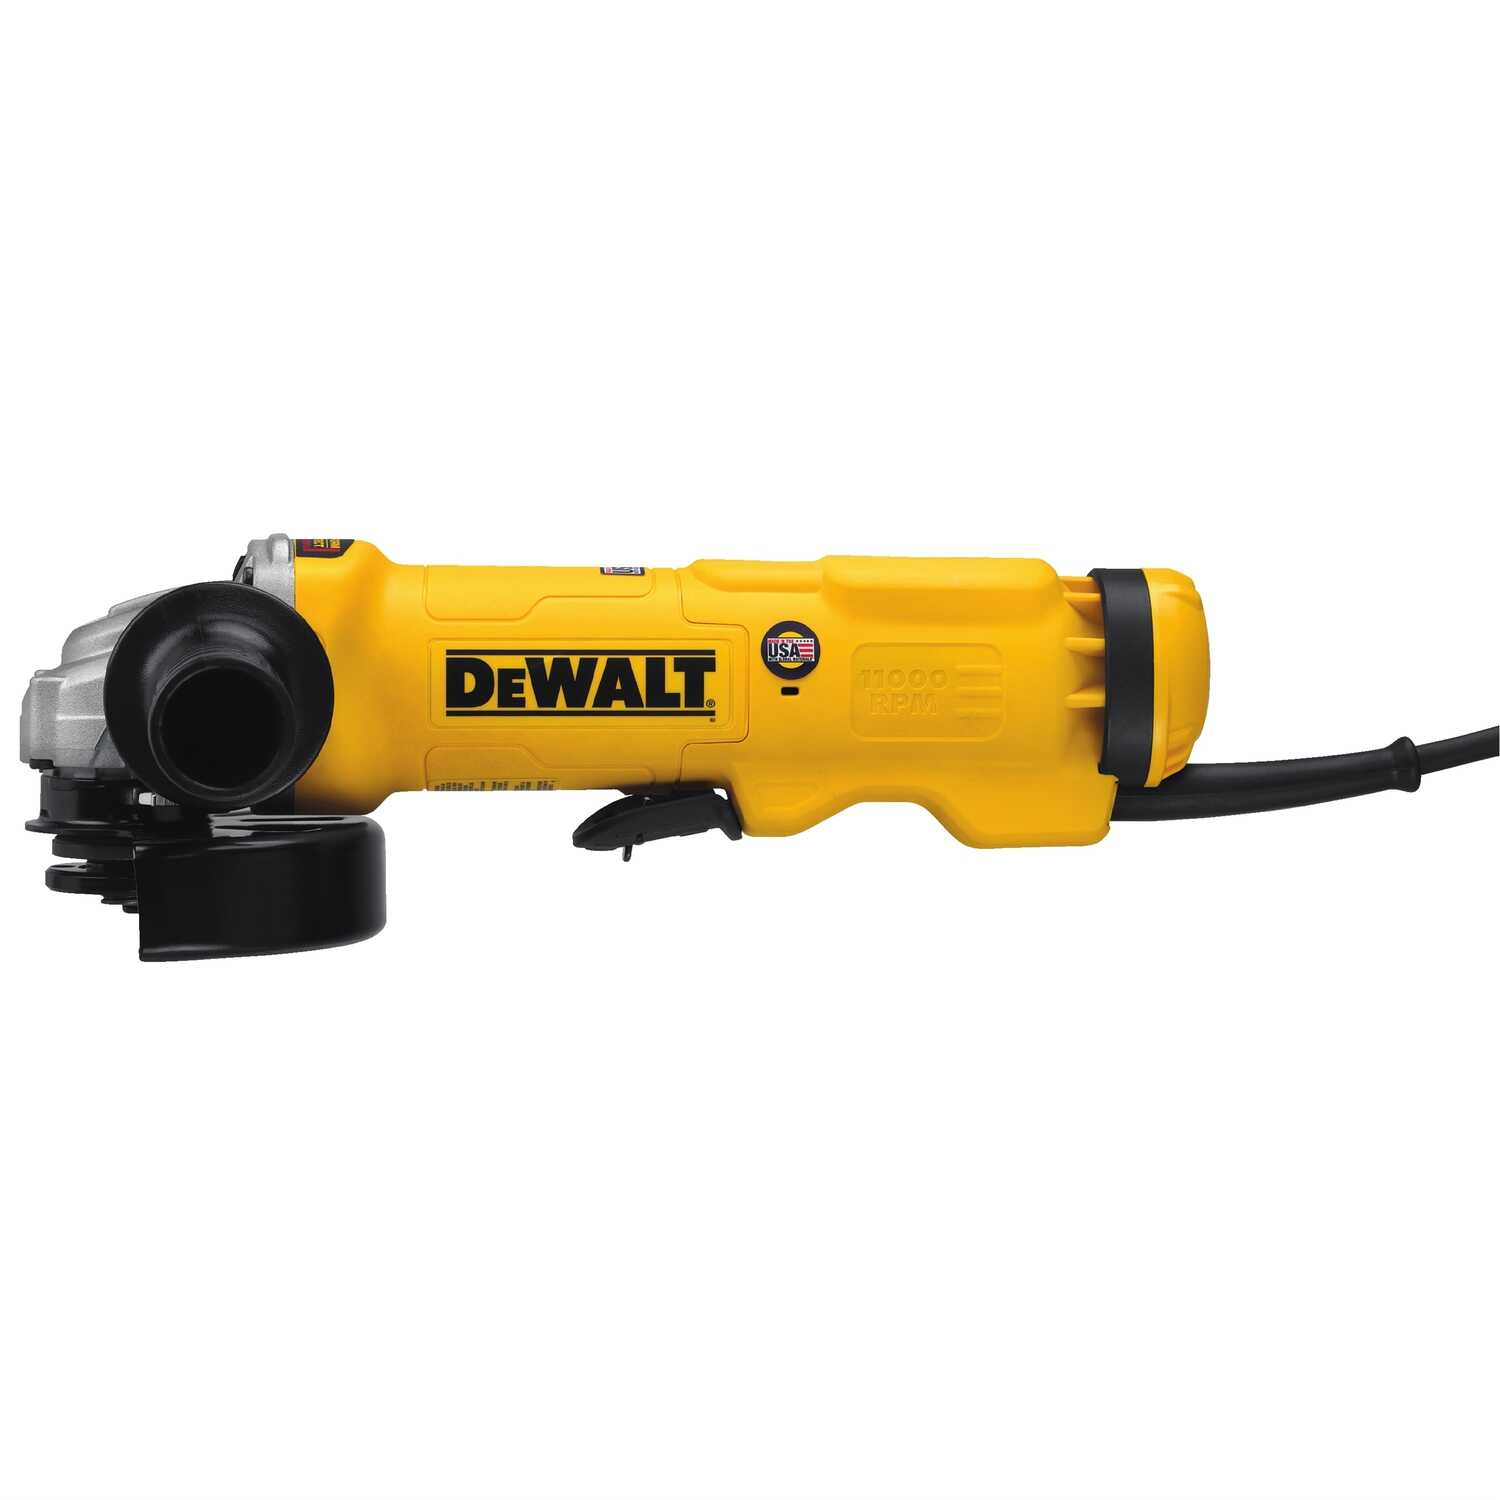 DeWalt  Corded  13 amps 4-1/2 to 5 in. Cut-Off/Angle Grinder  Bare Tool  Paddle  11000 rpm